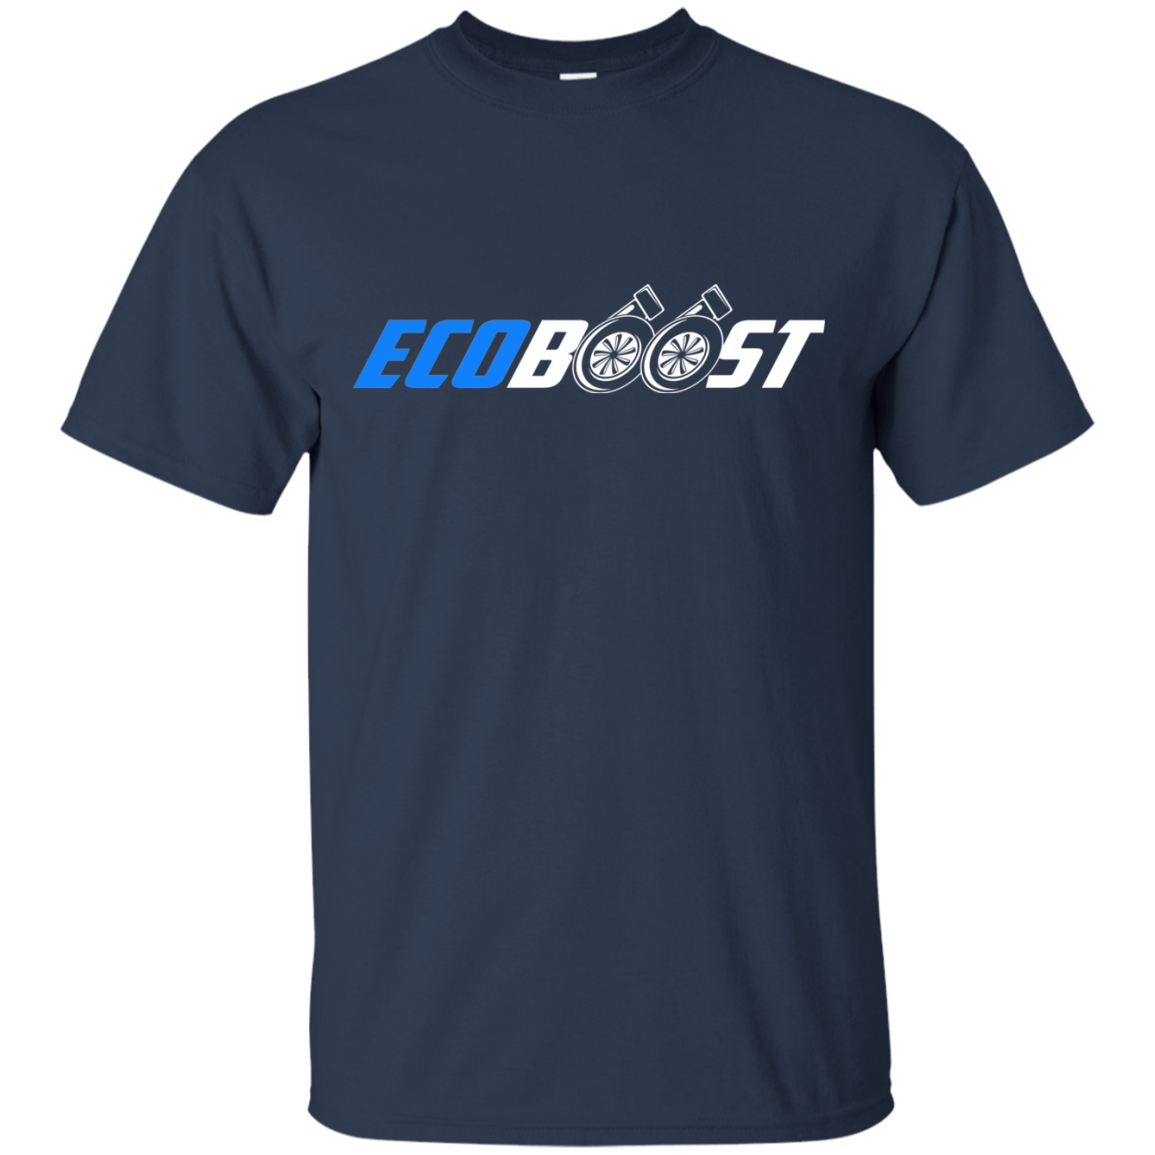 Ford Fusion Ecoboost >> Ecoboost Pullover T-Shirt 2.7 3.5 2.0 1.6 F-150 Mustang Ford Focus Fiesta Fusion | eBay